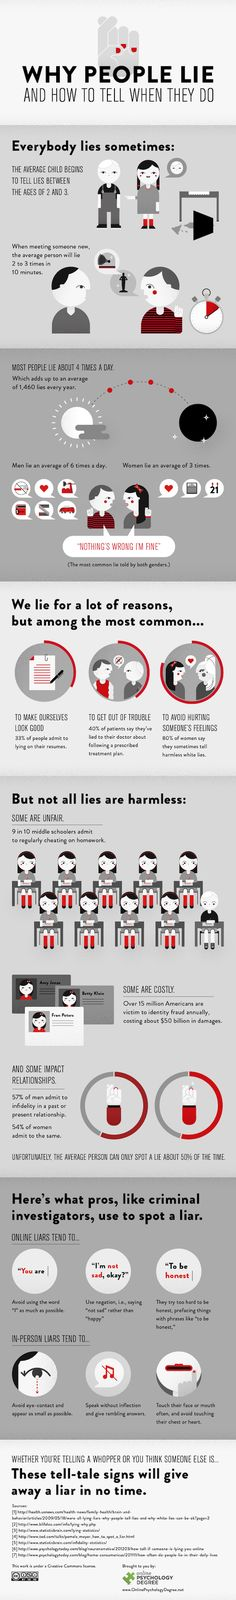 Infographic: Why People Lie And How To Tell When They Do - DesignTAXI.com